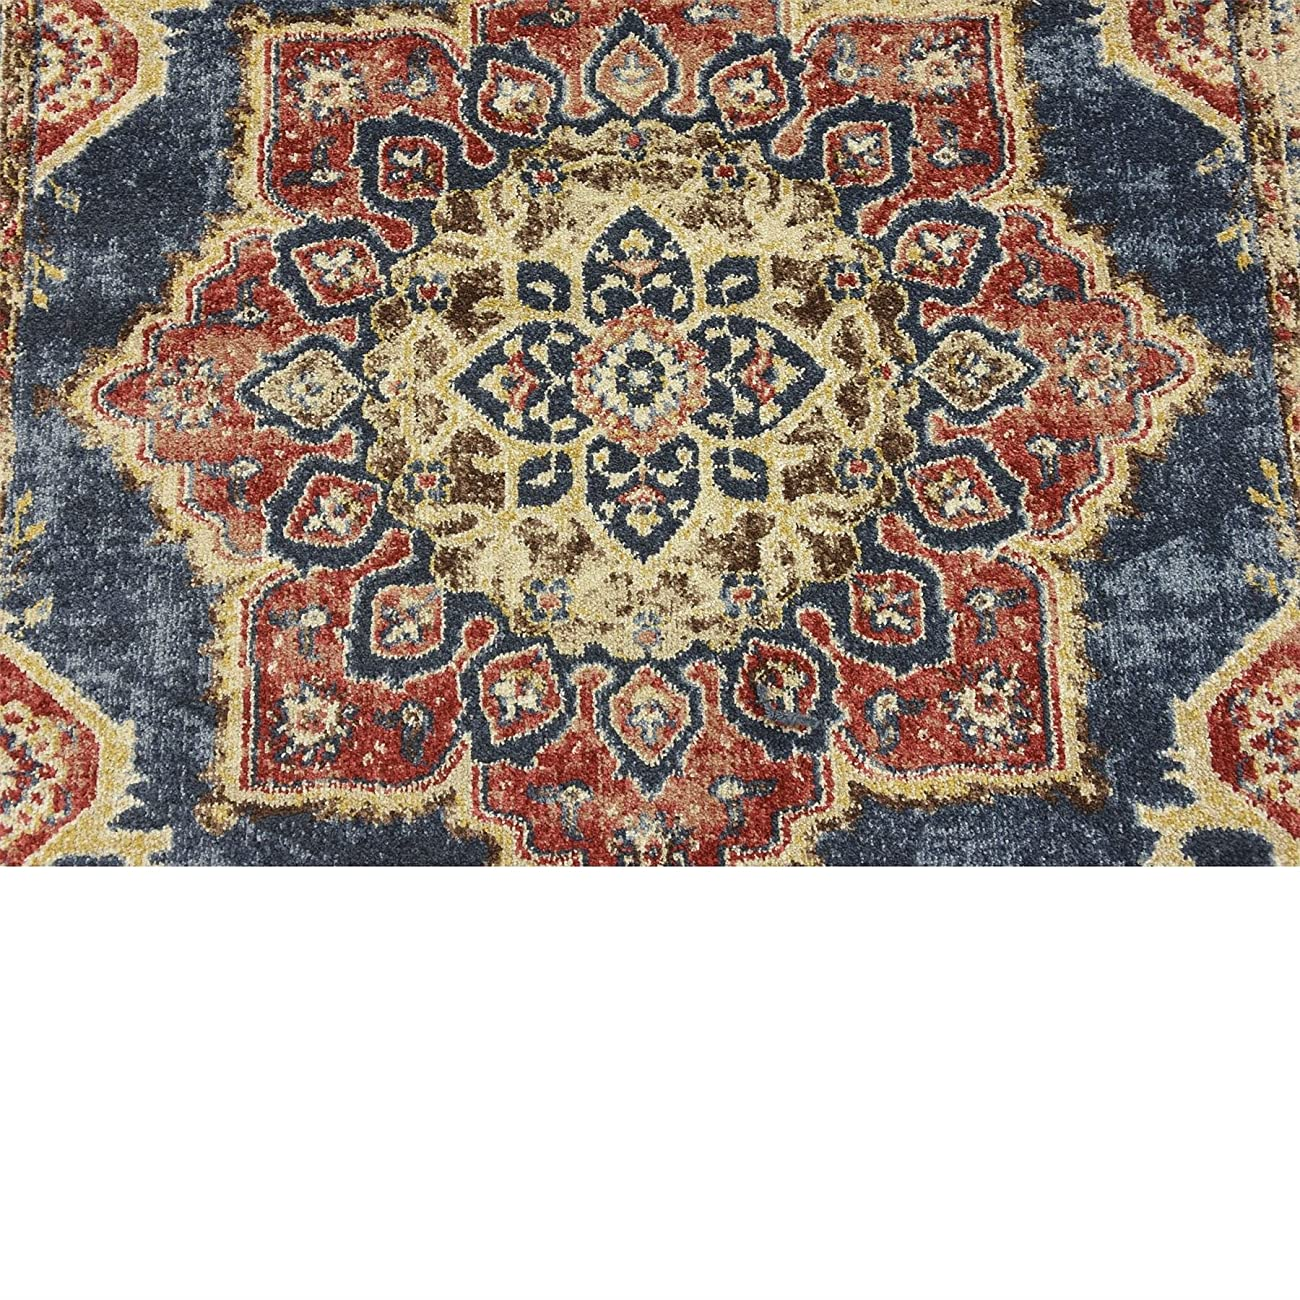 Traditional Persian Rugs Vintage Design Inspired Overdyed Fancy Dark Blue 4' x 6' FT (122cm x 183cm) St. James Area Rug 4